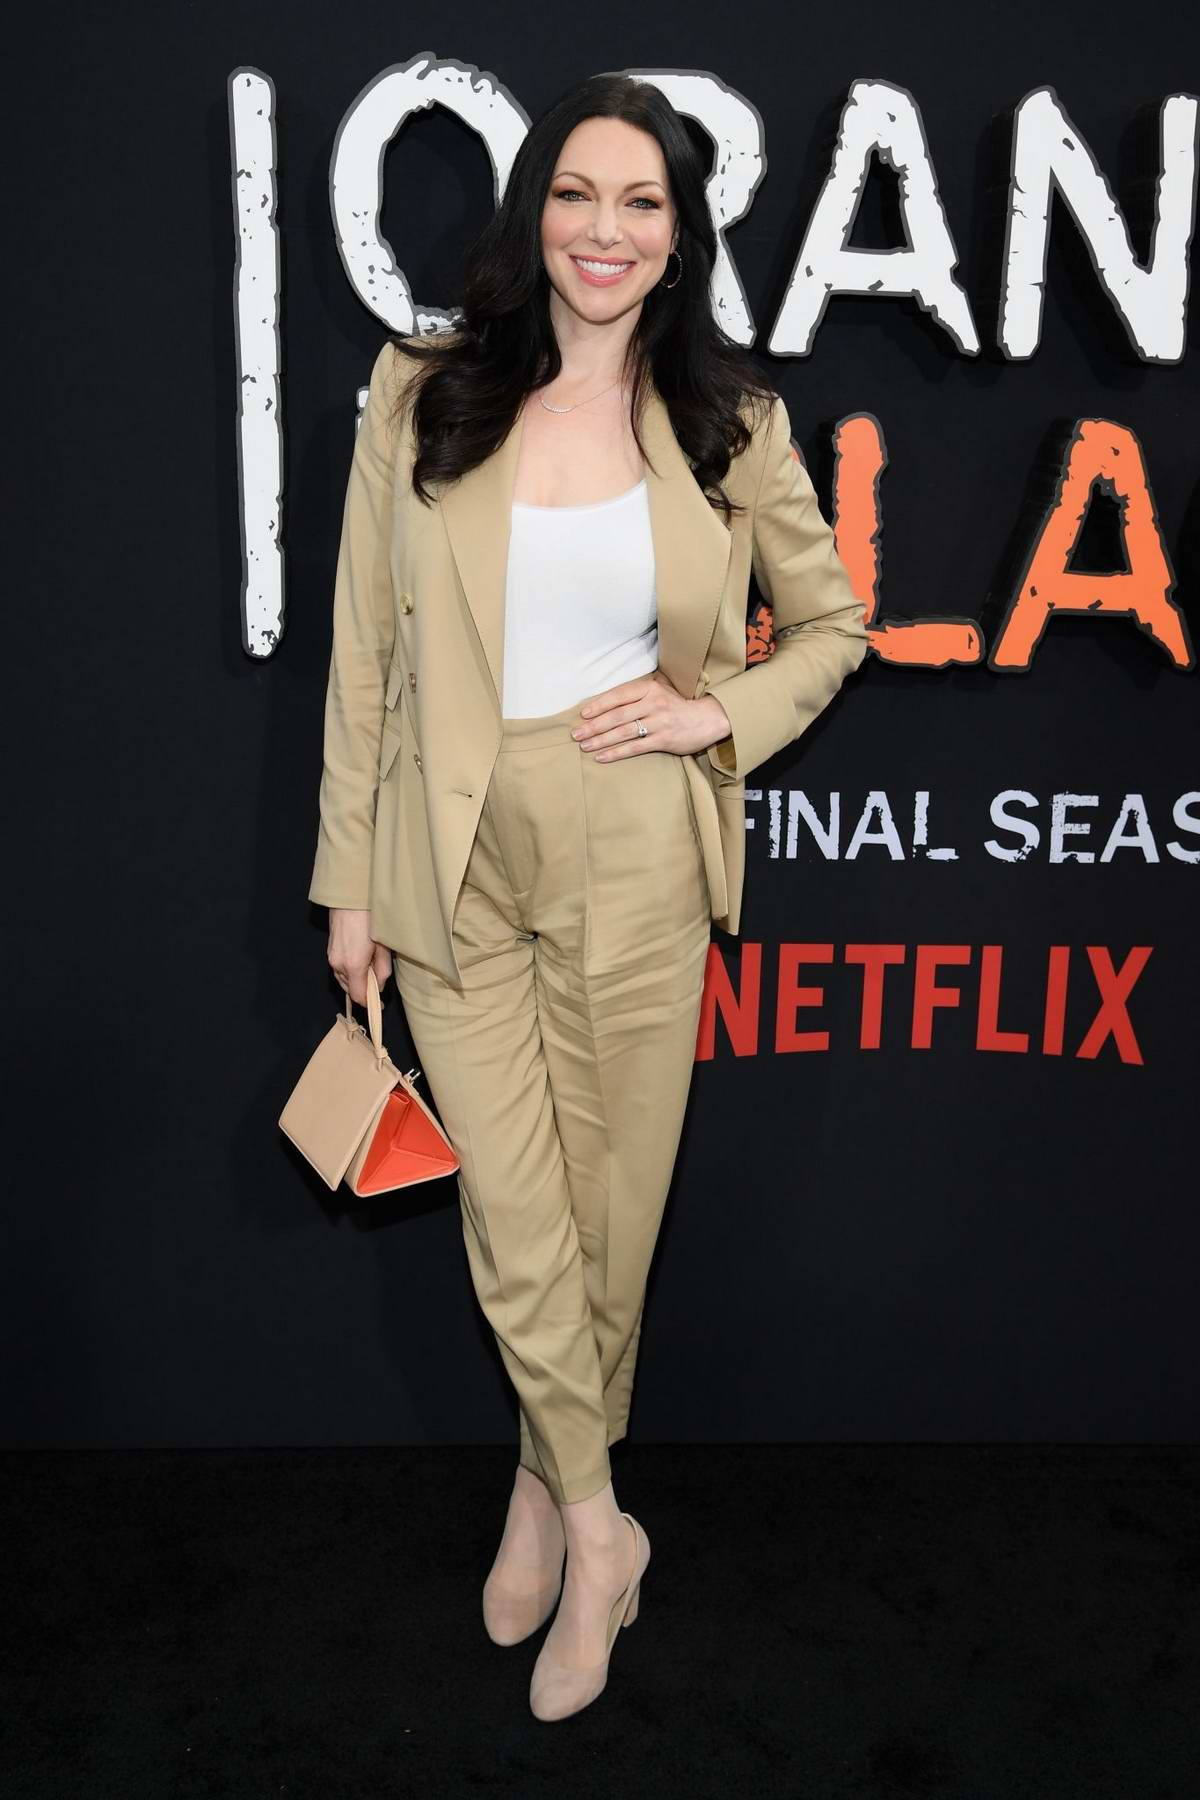 Laura Prepon attends the 'Orange Is The New Black' Final Season World Premiere at Alice Tully Hall, Lincoln Center in New York City